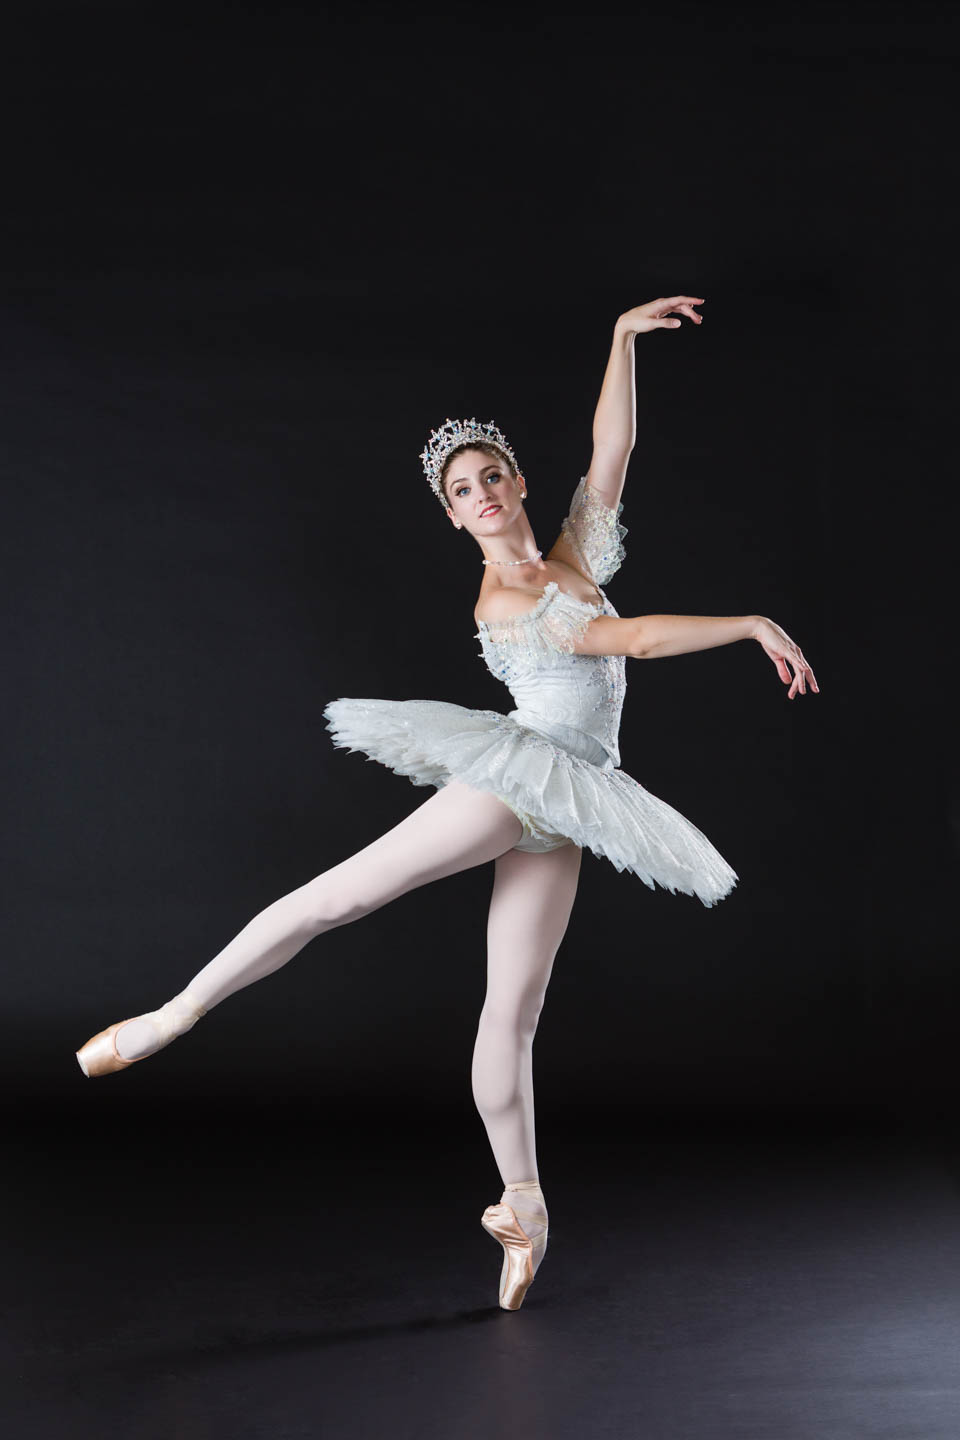 Lead Ballerina poses for the cover of the 2015 Nutcracker